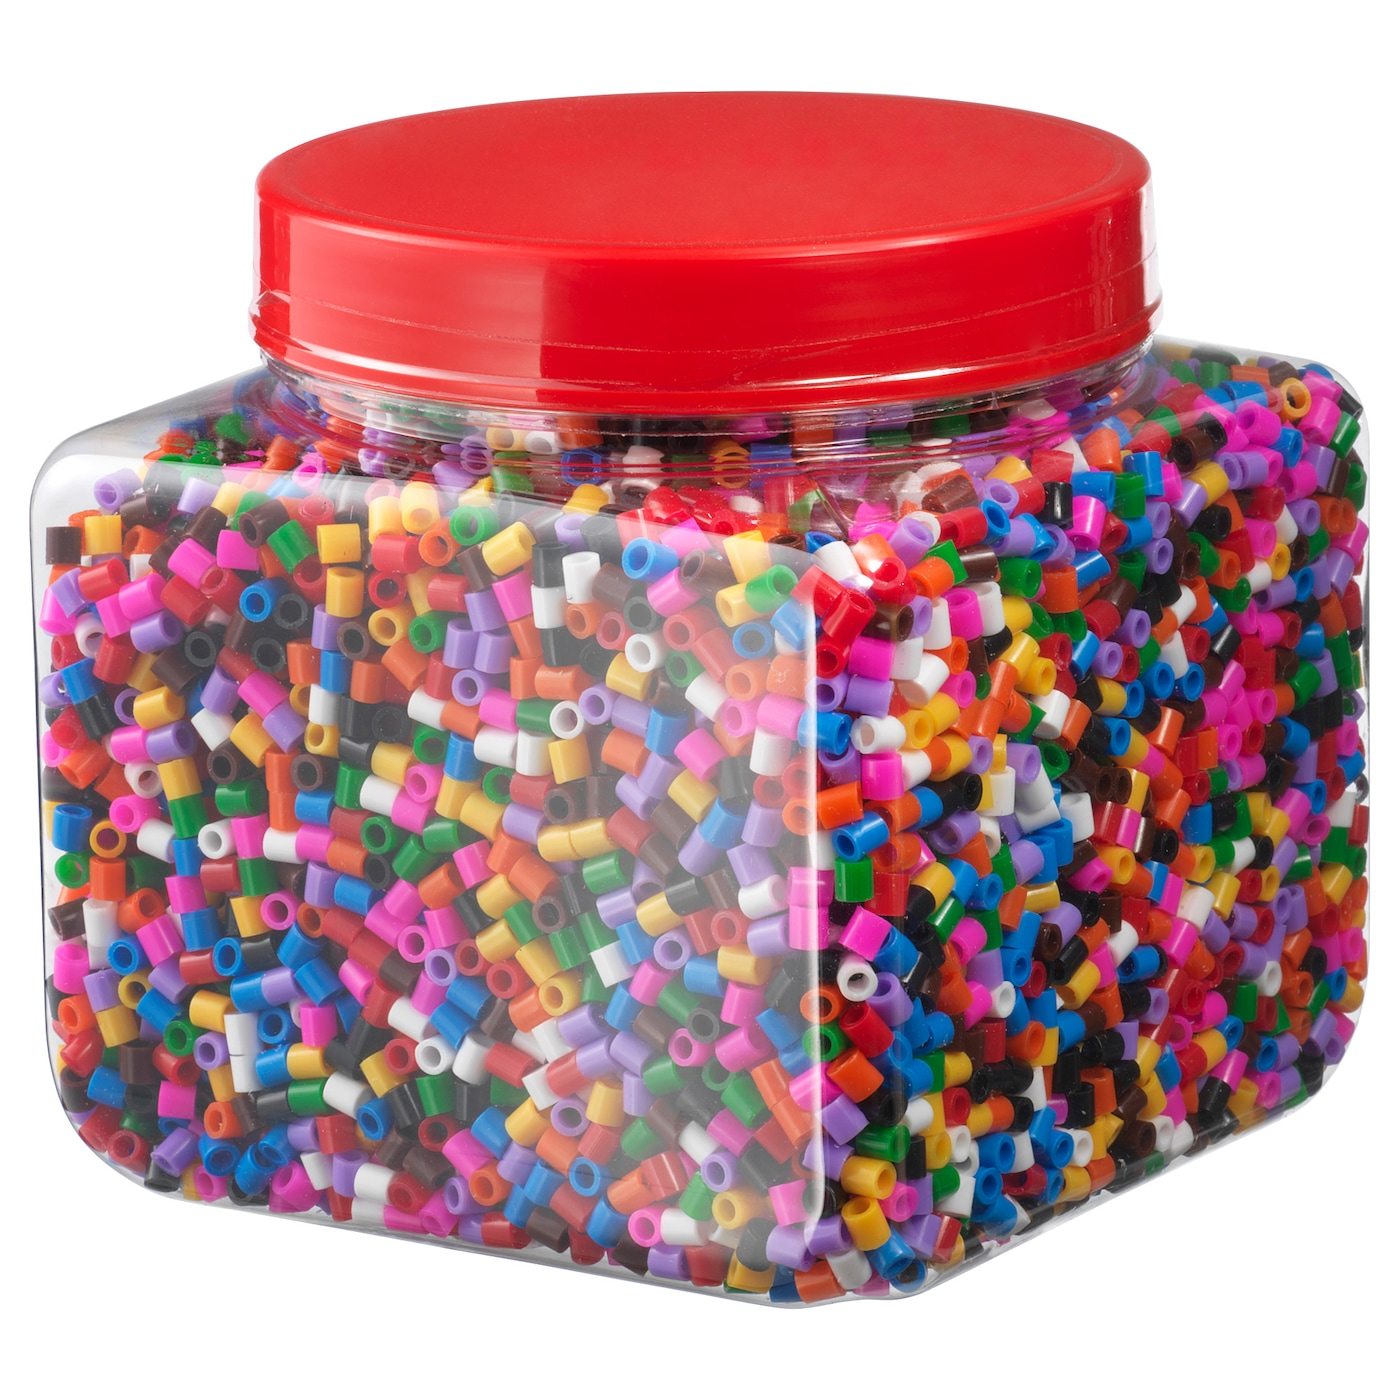 IKEA PYSSLA beads Helps the child develop fine motor skills and hand/eye co-ordination.